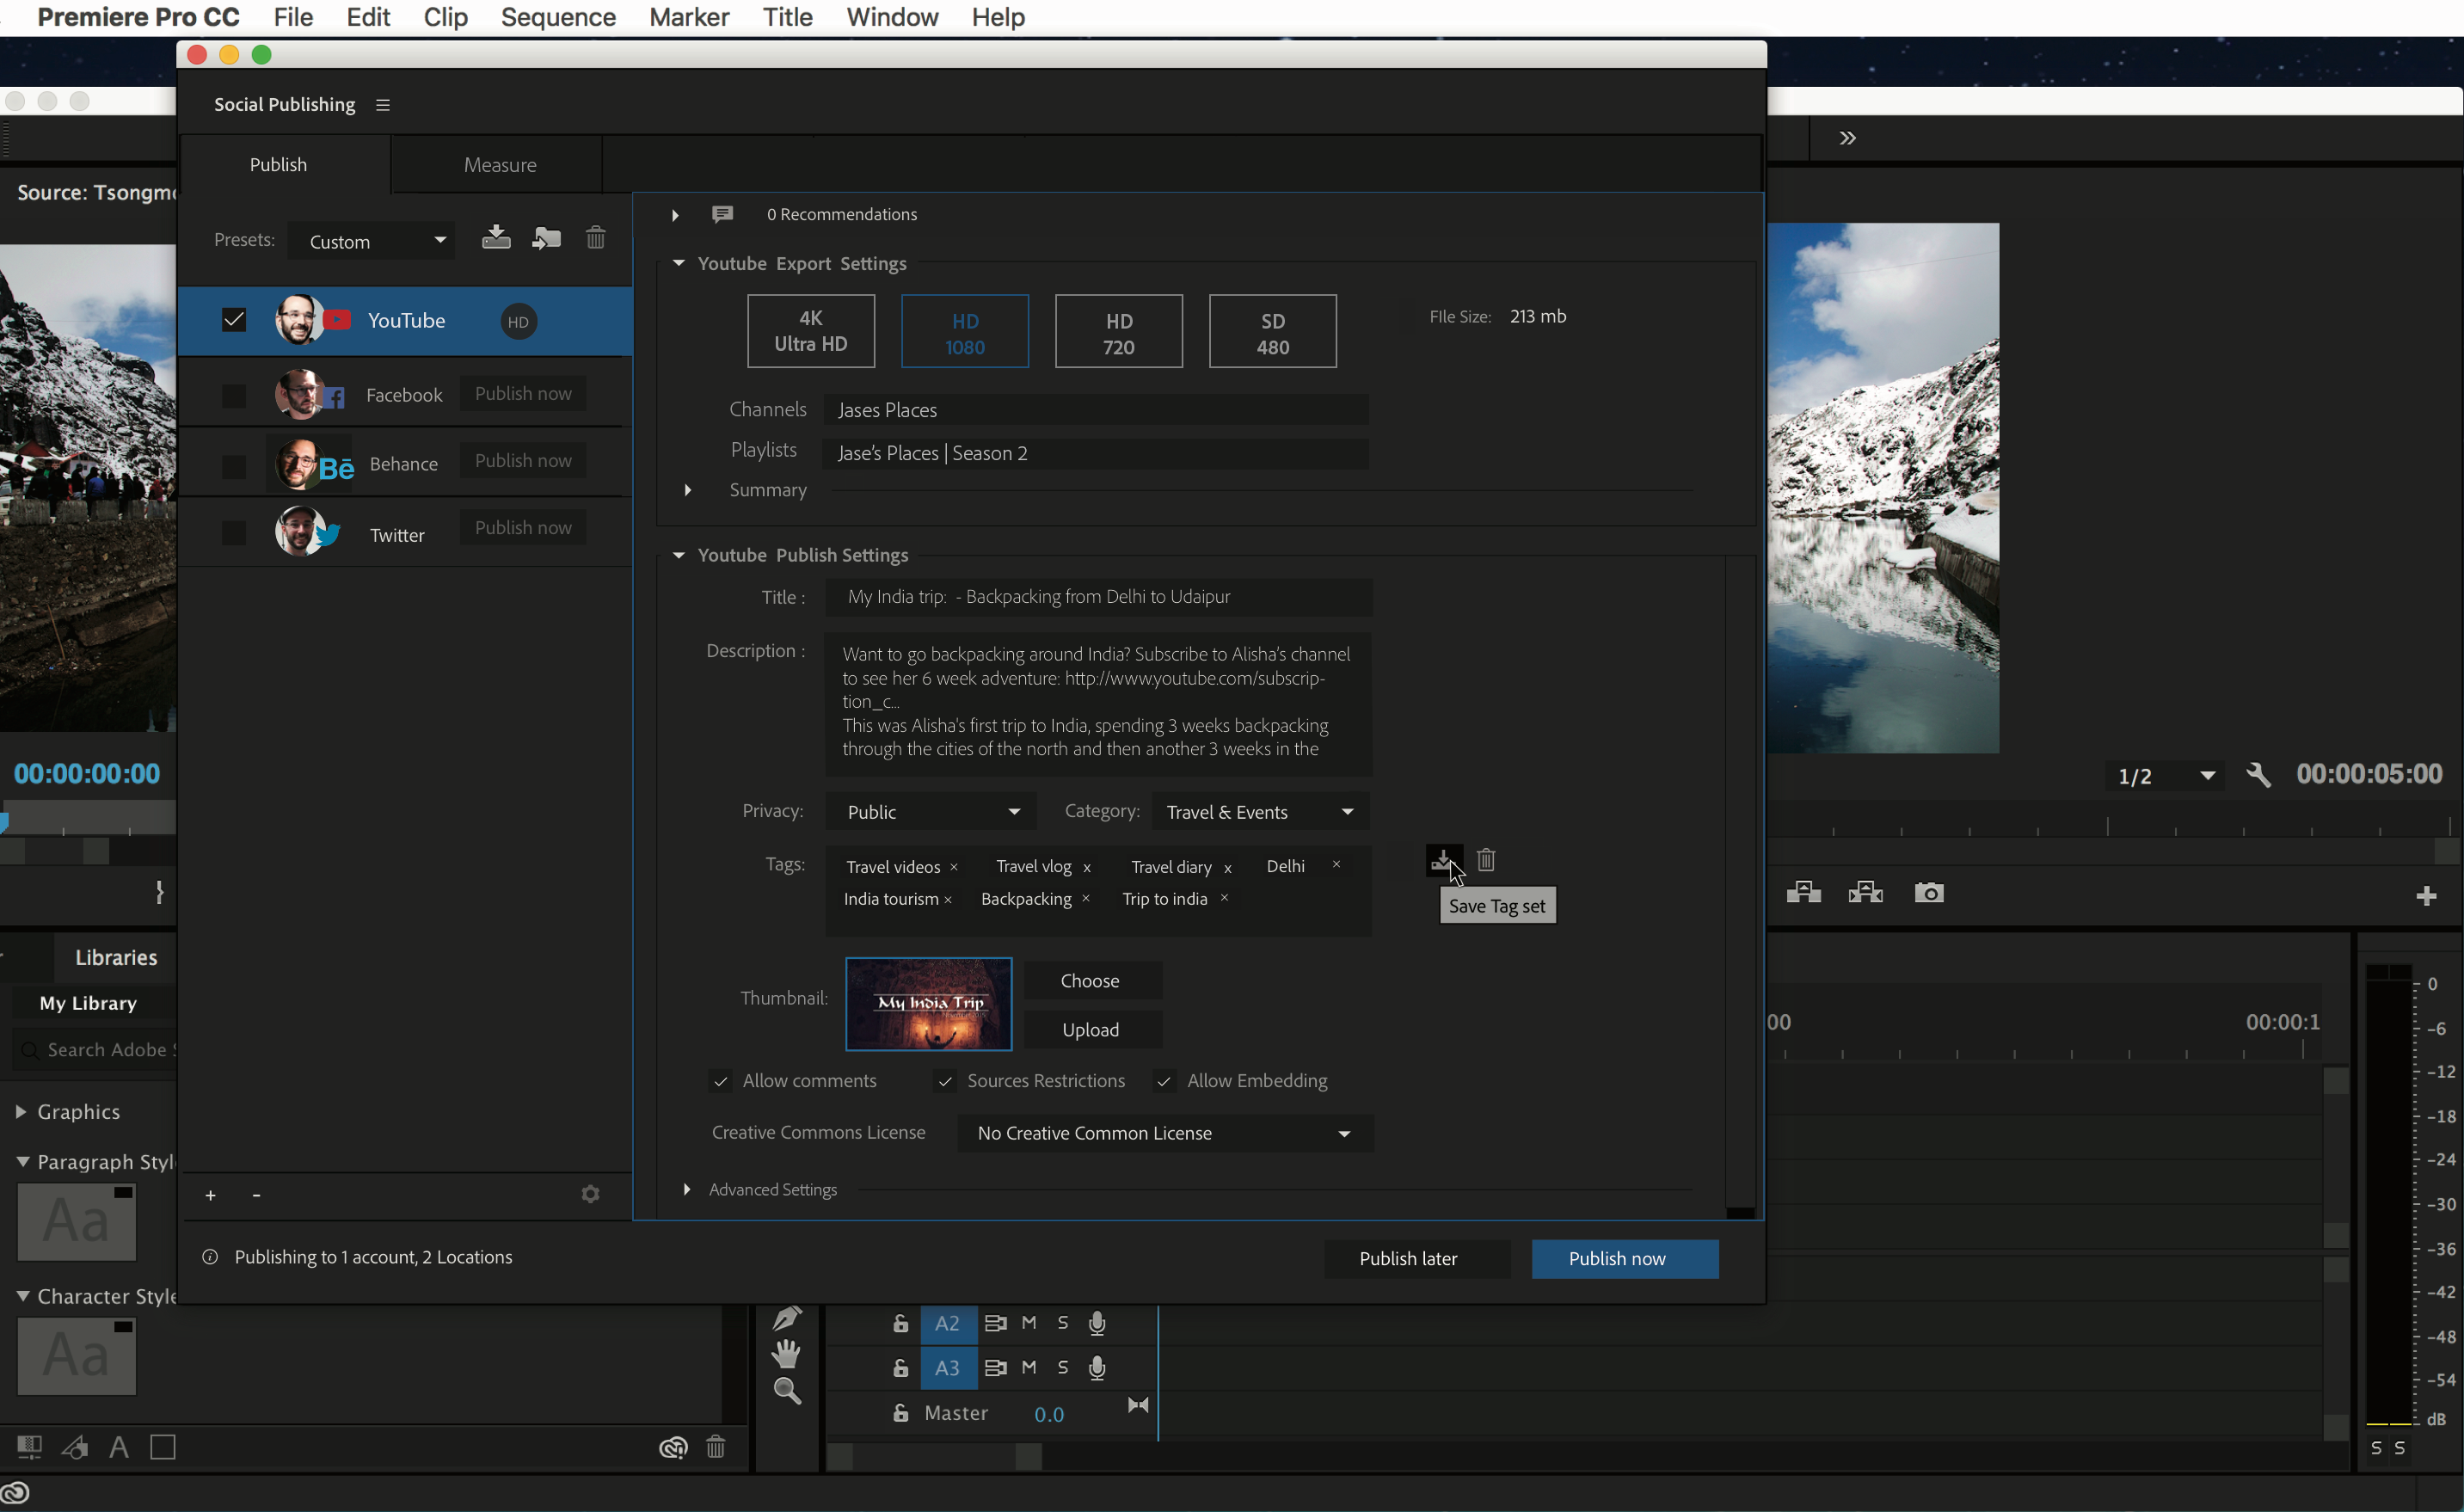 The new Social Publishing panel (beta) in Premiere Pro 10